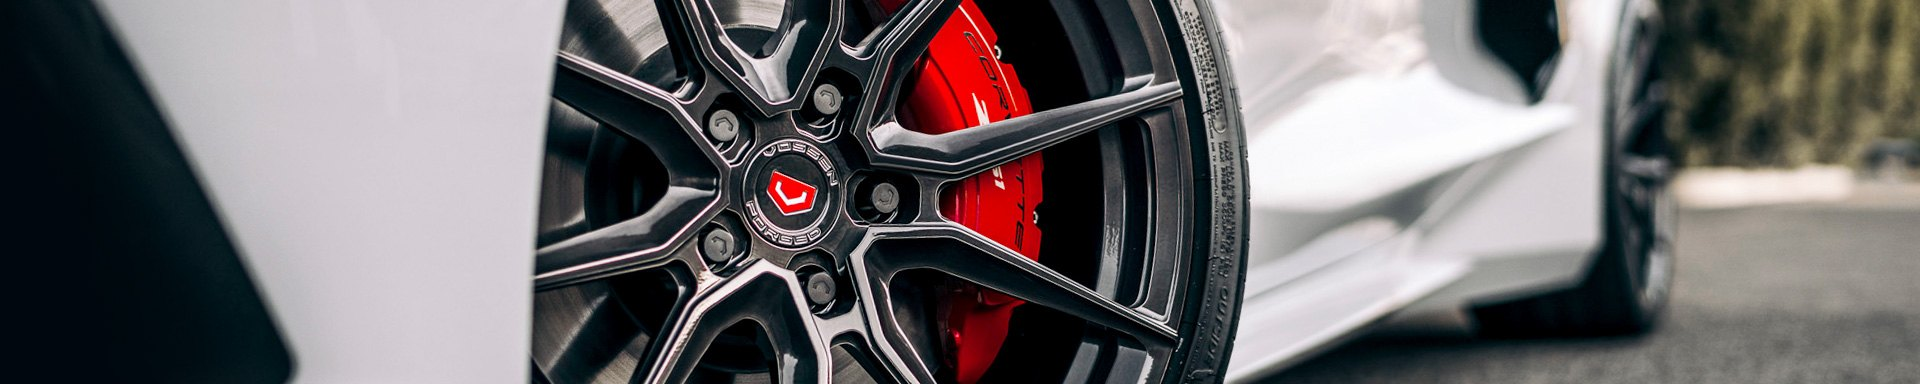 22 Inch Rims Custom 22 Wheel And Tire Packages At Caridcom